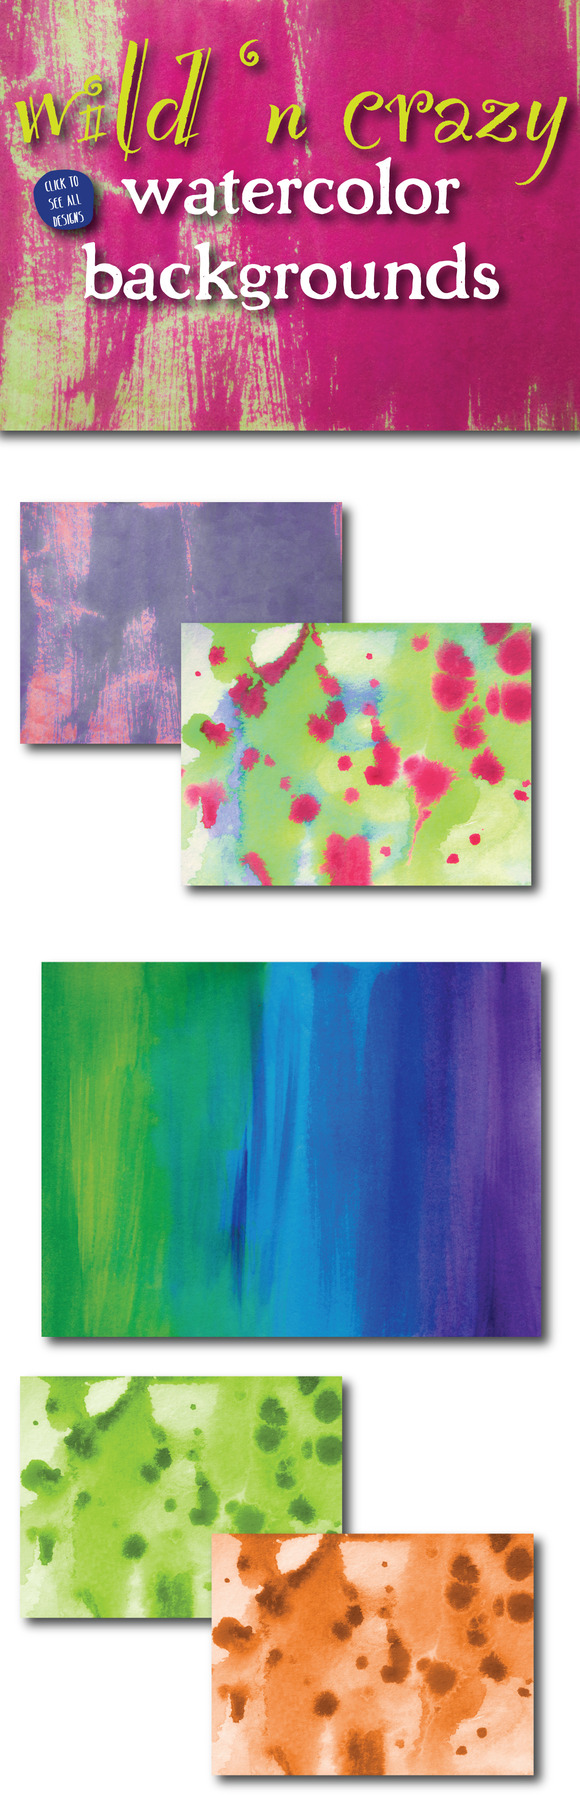 Wild N Crazy Watercolor Backgrounds